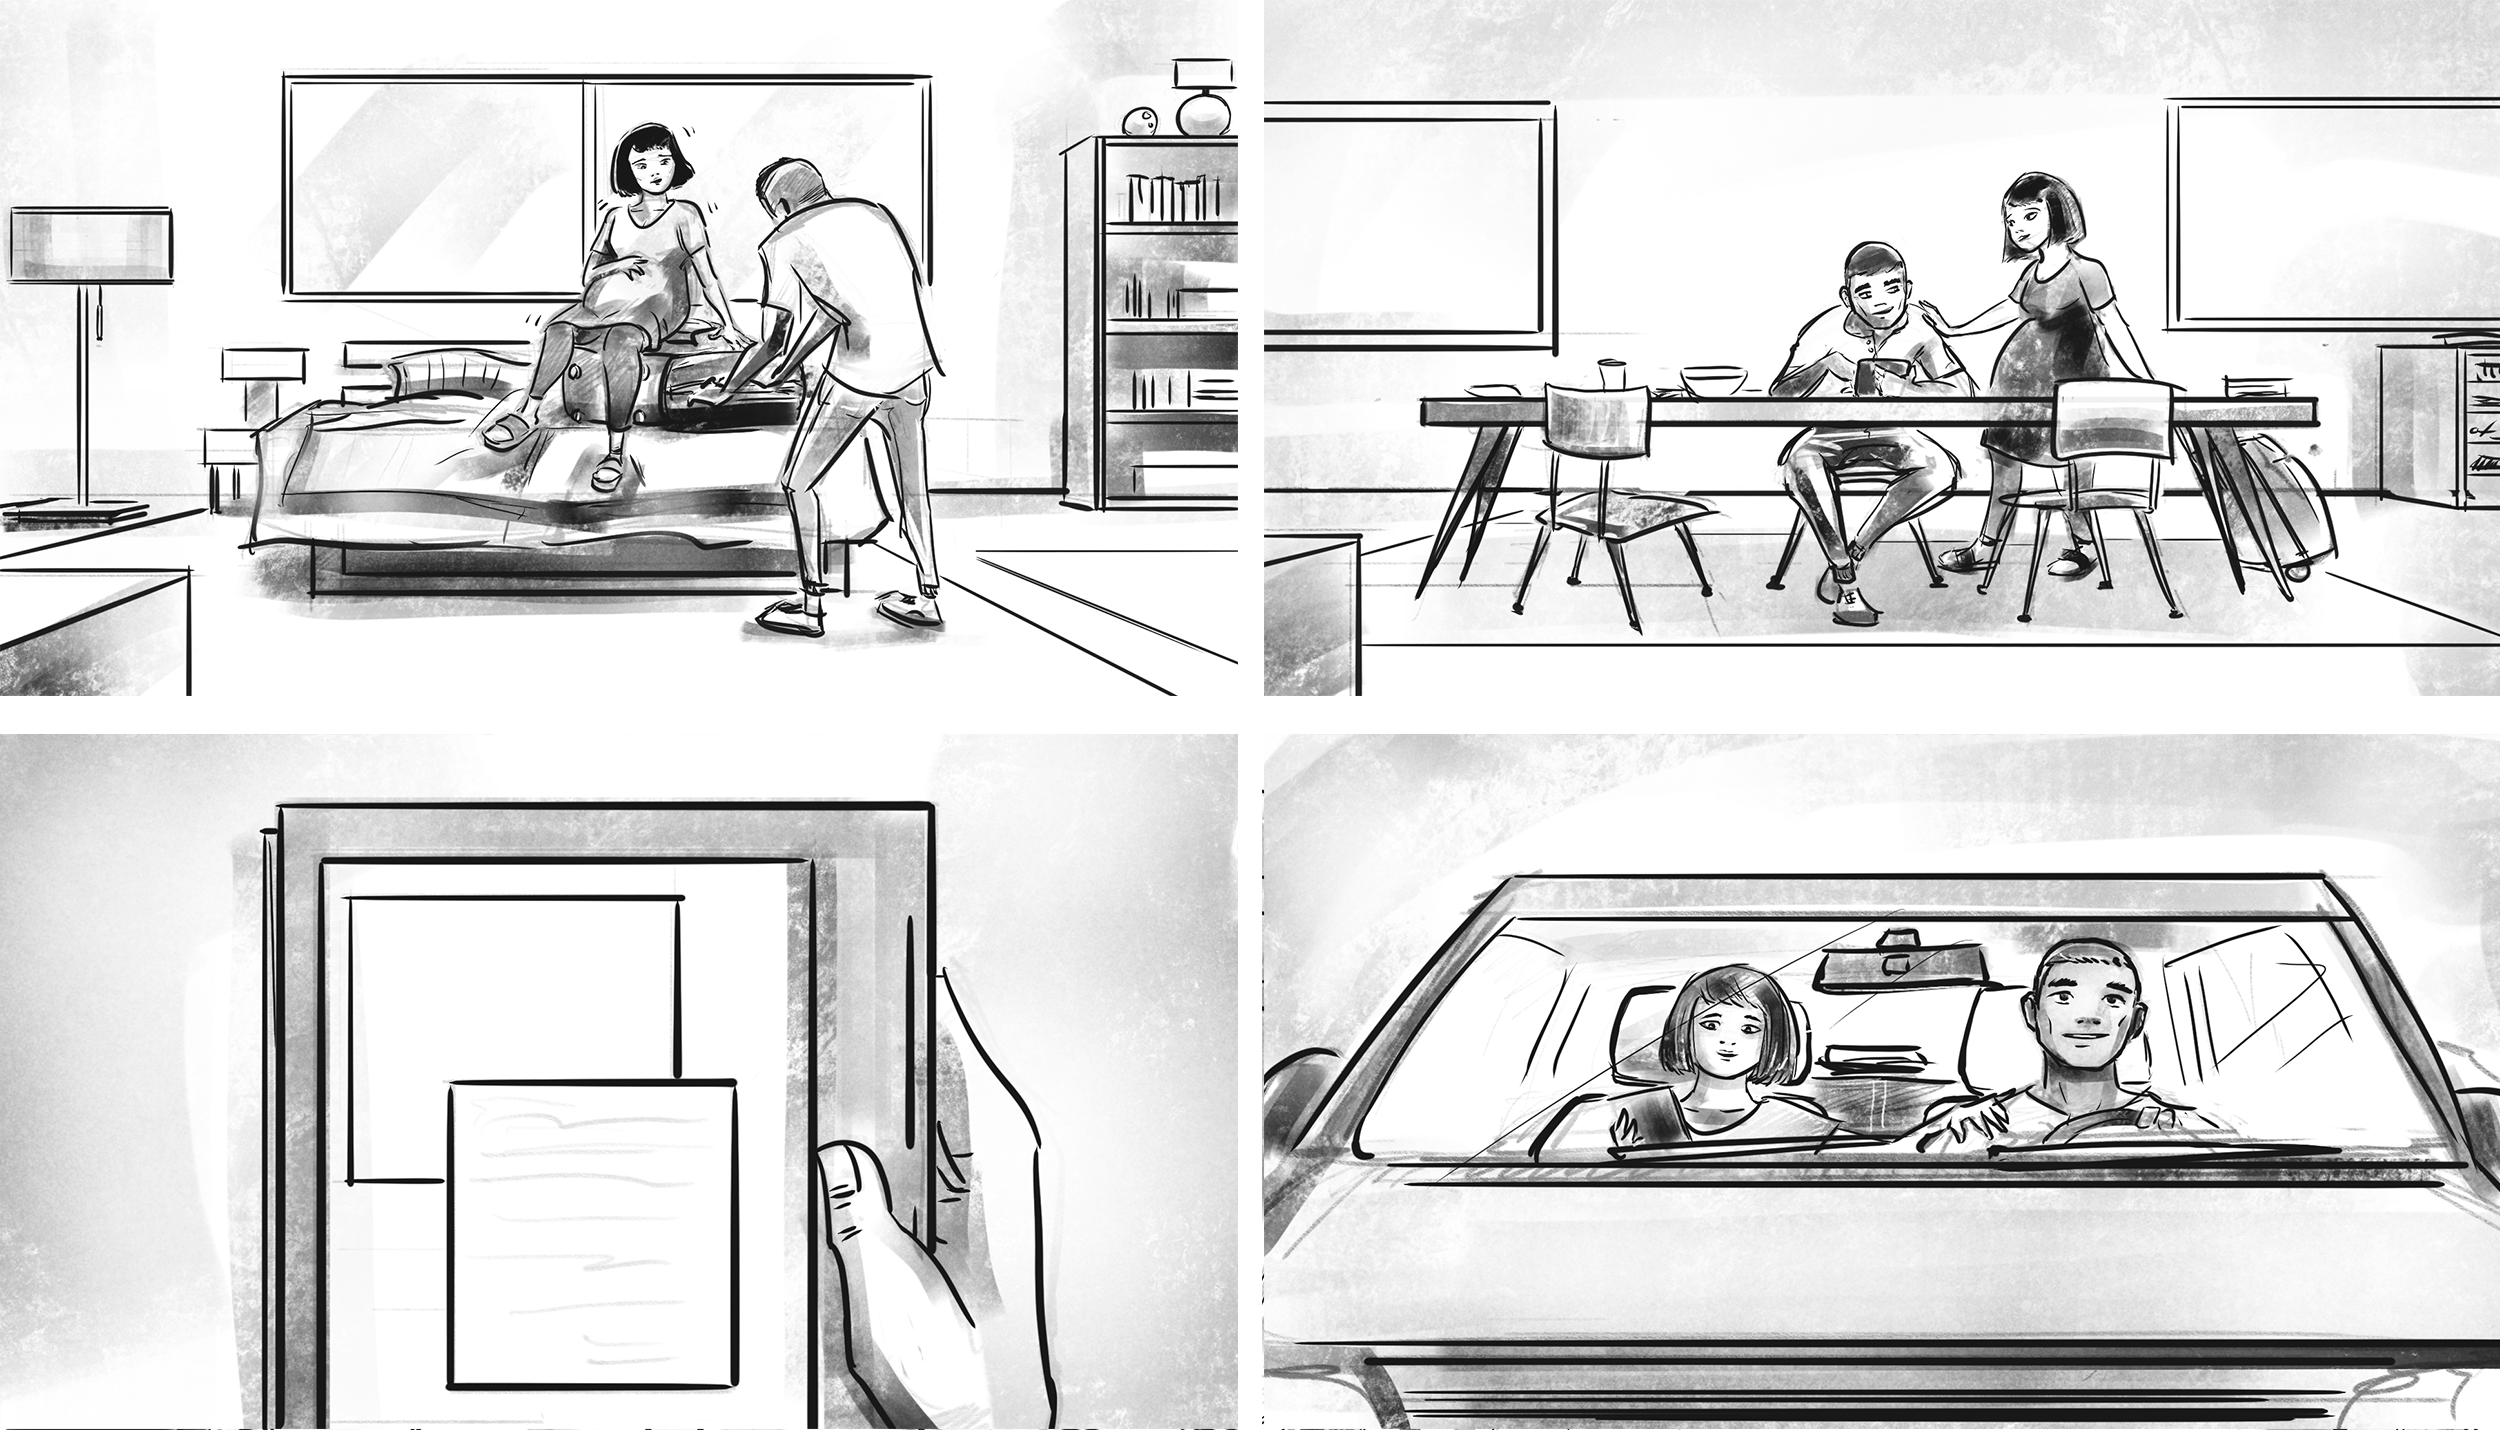 110217_HelloRaul_Storyboards_V0103_1.png